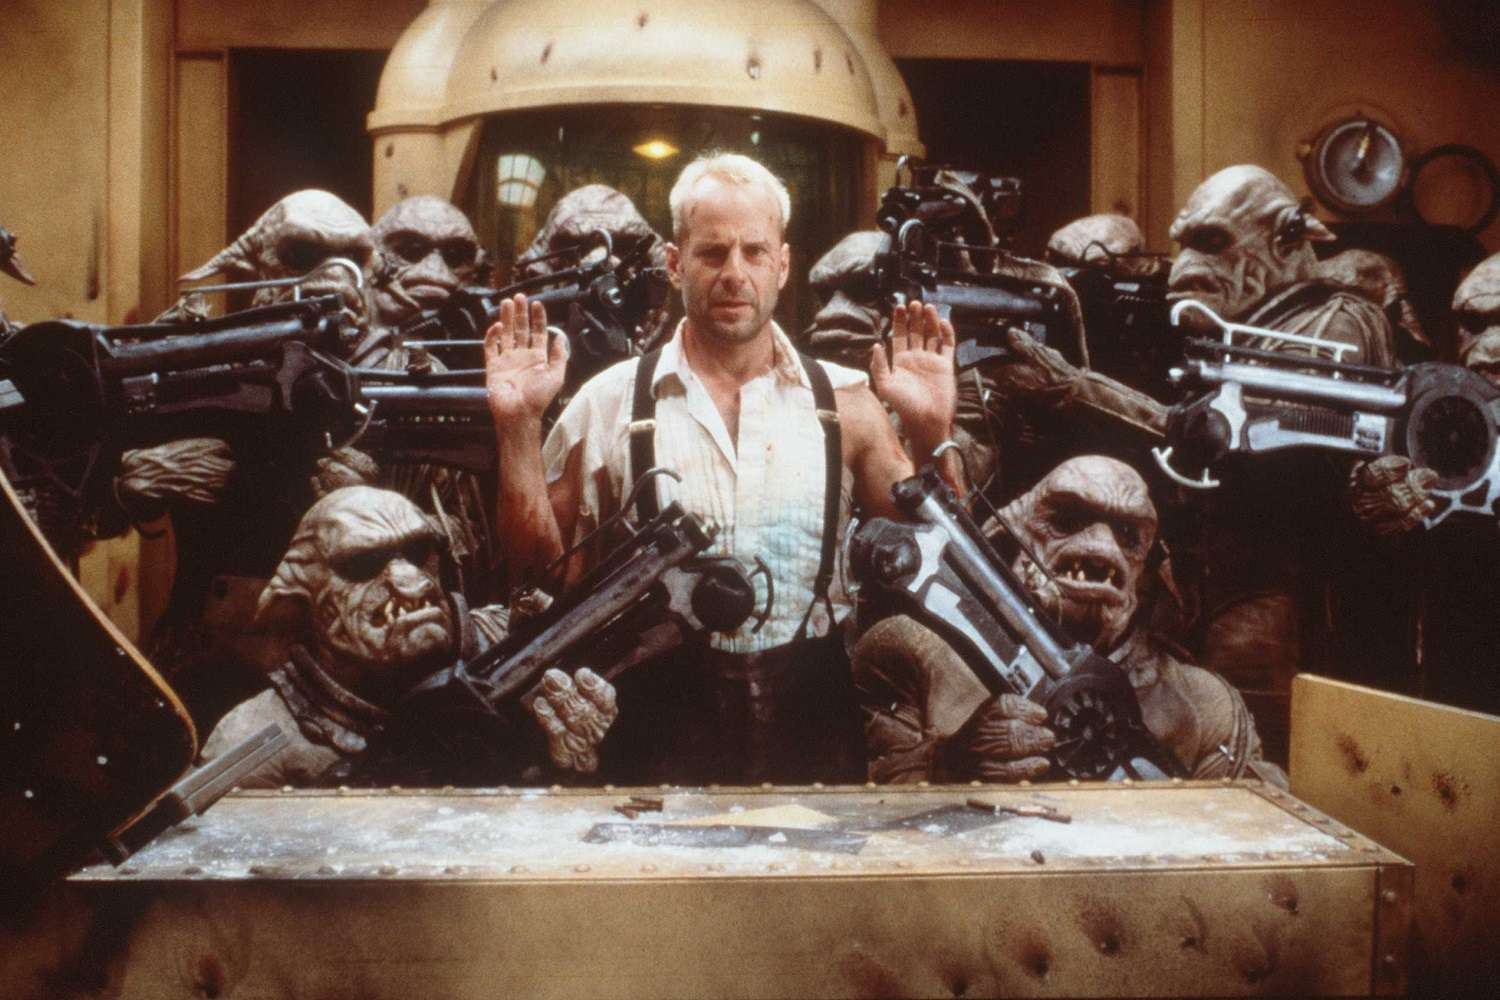 Actor Bruce Willis in a scene from the 1997 film 'The Fifth Element'